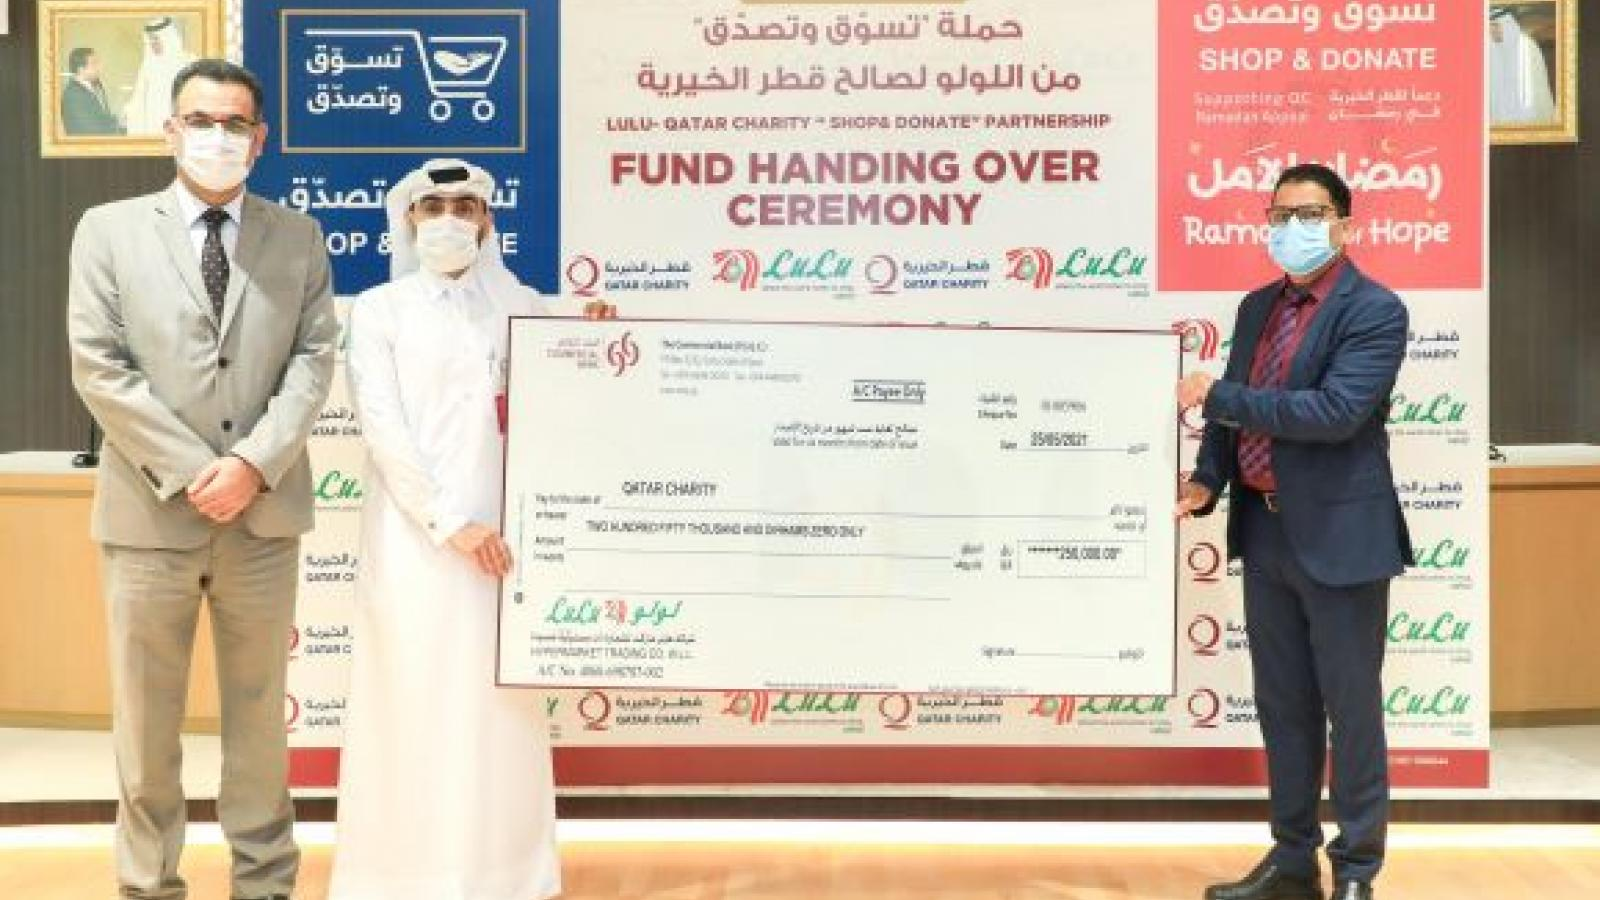 Qatar Charity and Lulu to launch the 'Shop & Donate' campaign